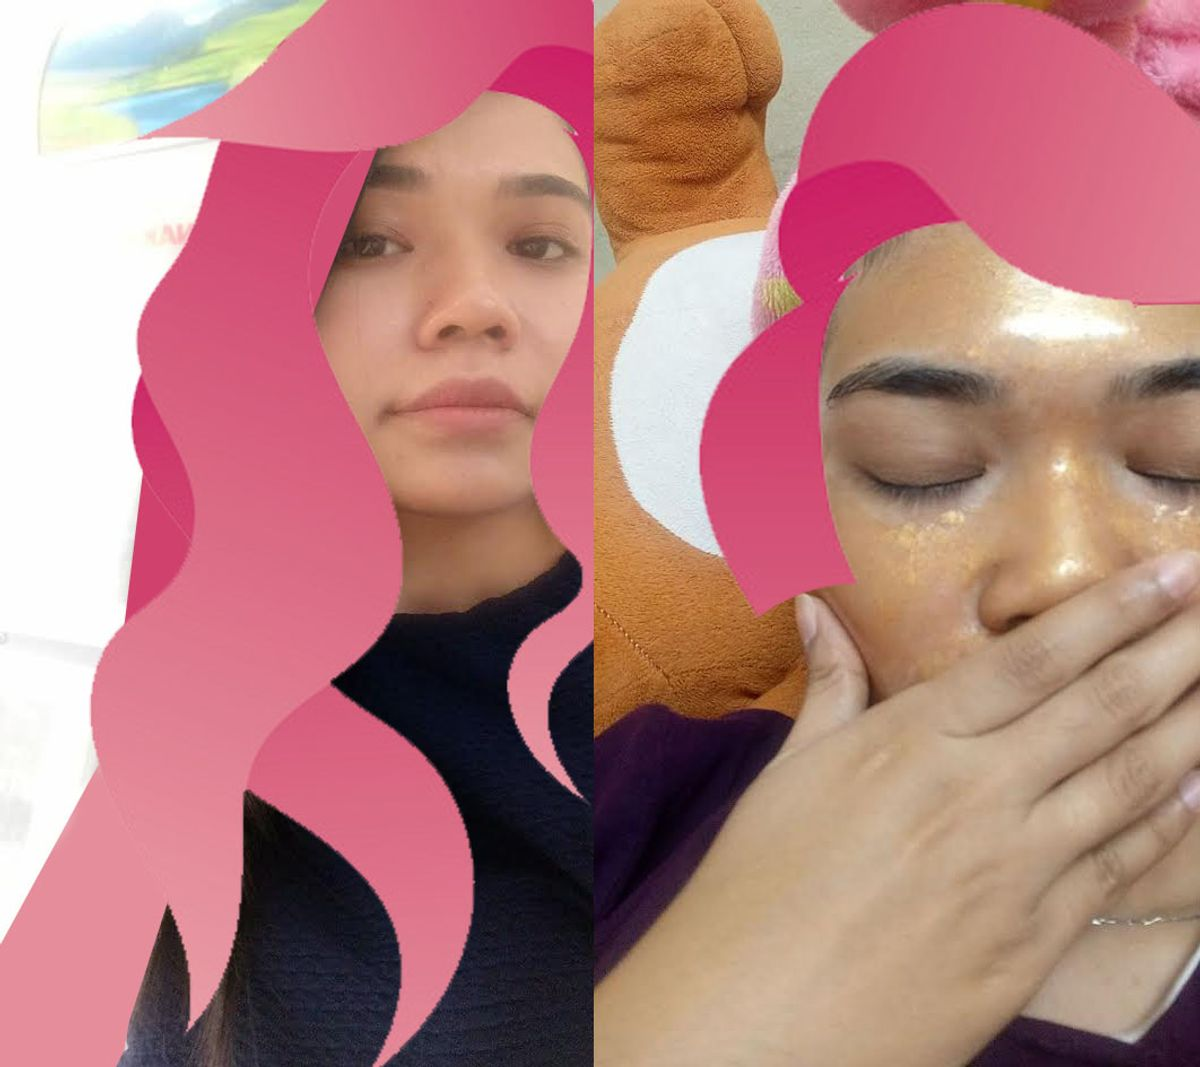 """""""I felt insecure & tak confident with myself"""" by Echa Aan"""